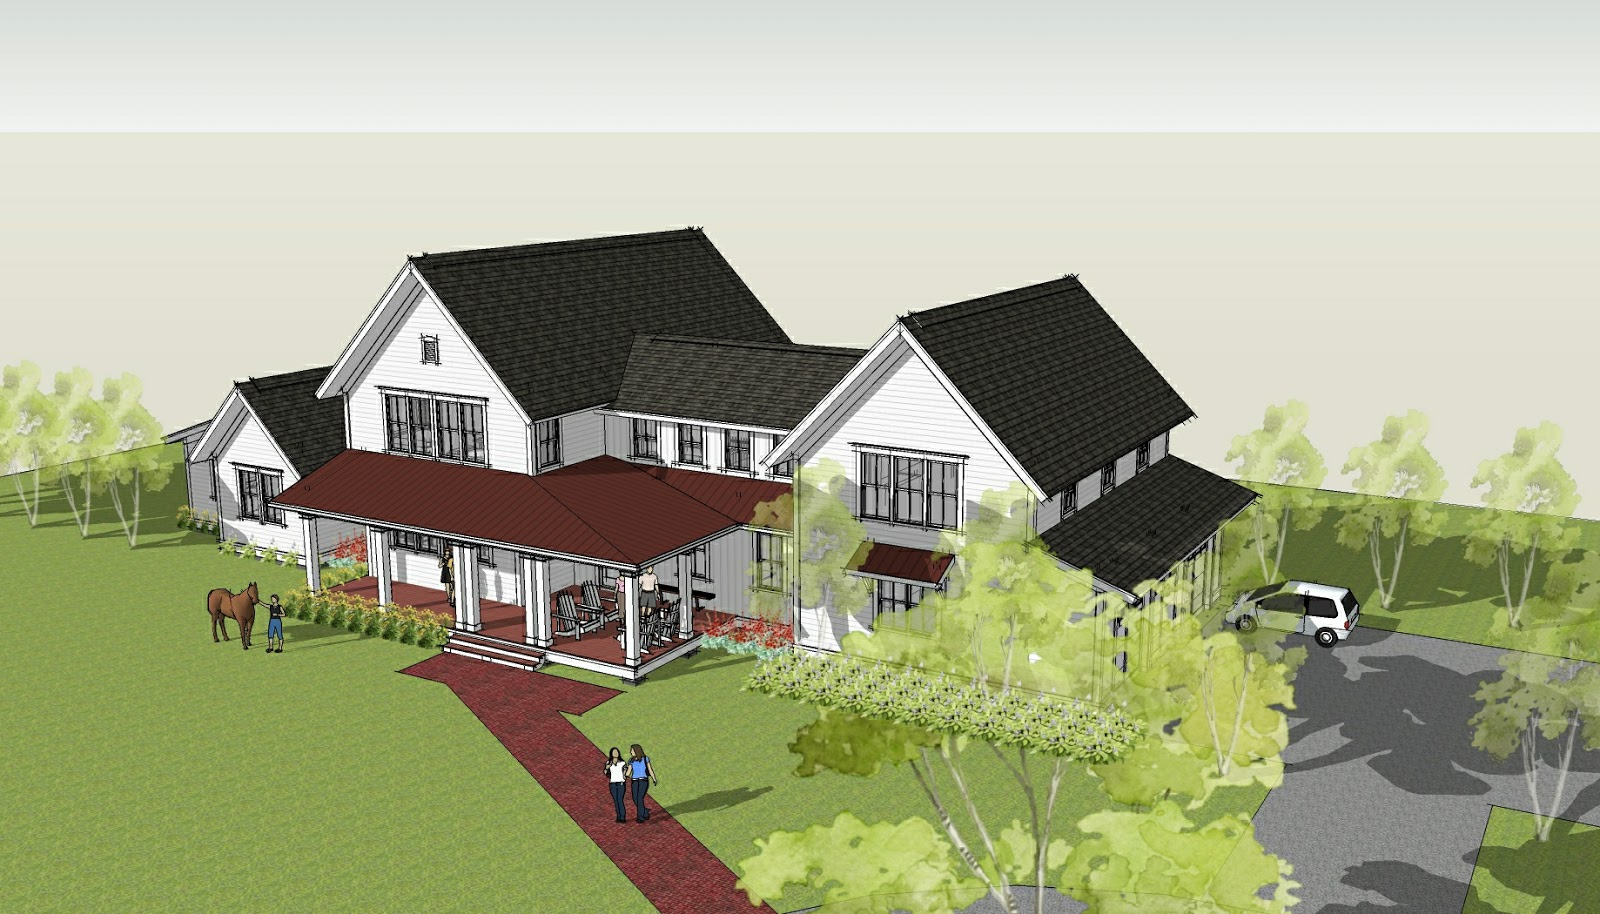 Ron brenner architects new modern farmhouse design completed for Home plans farmhouse